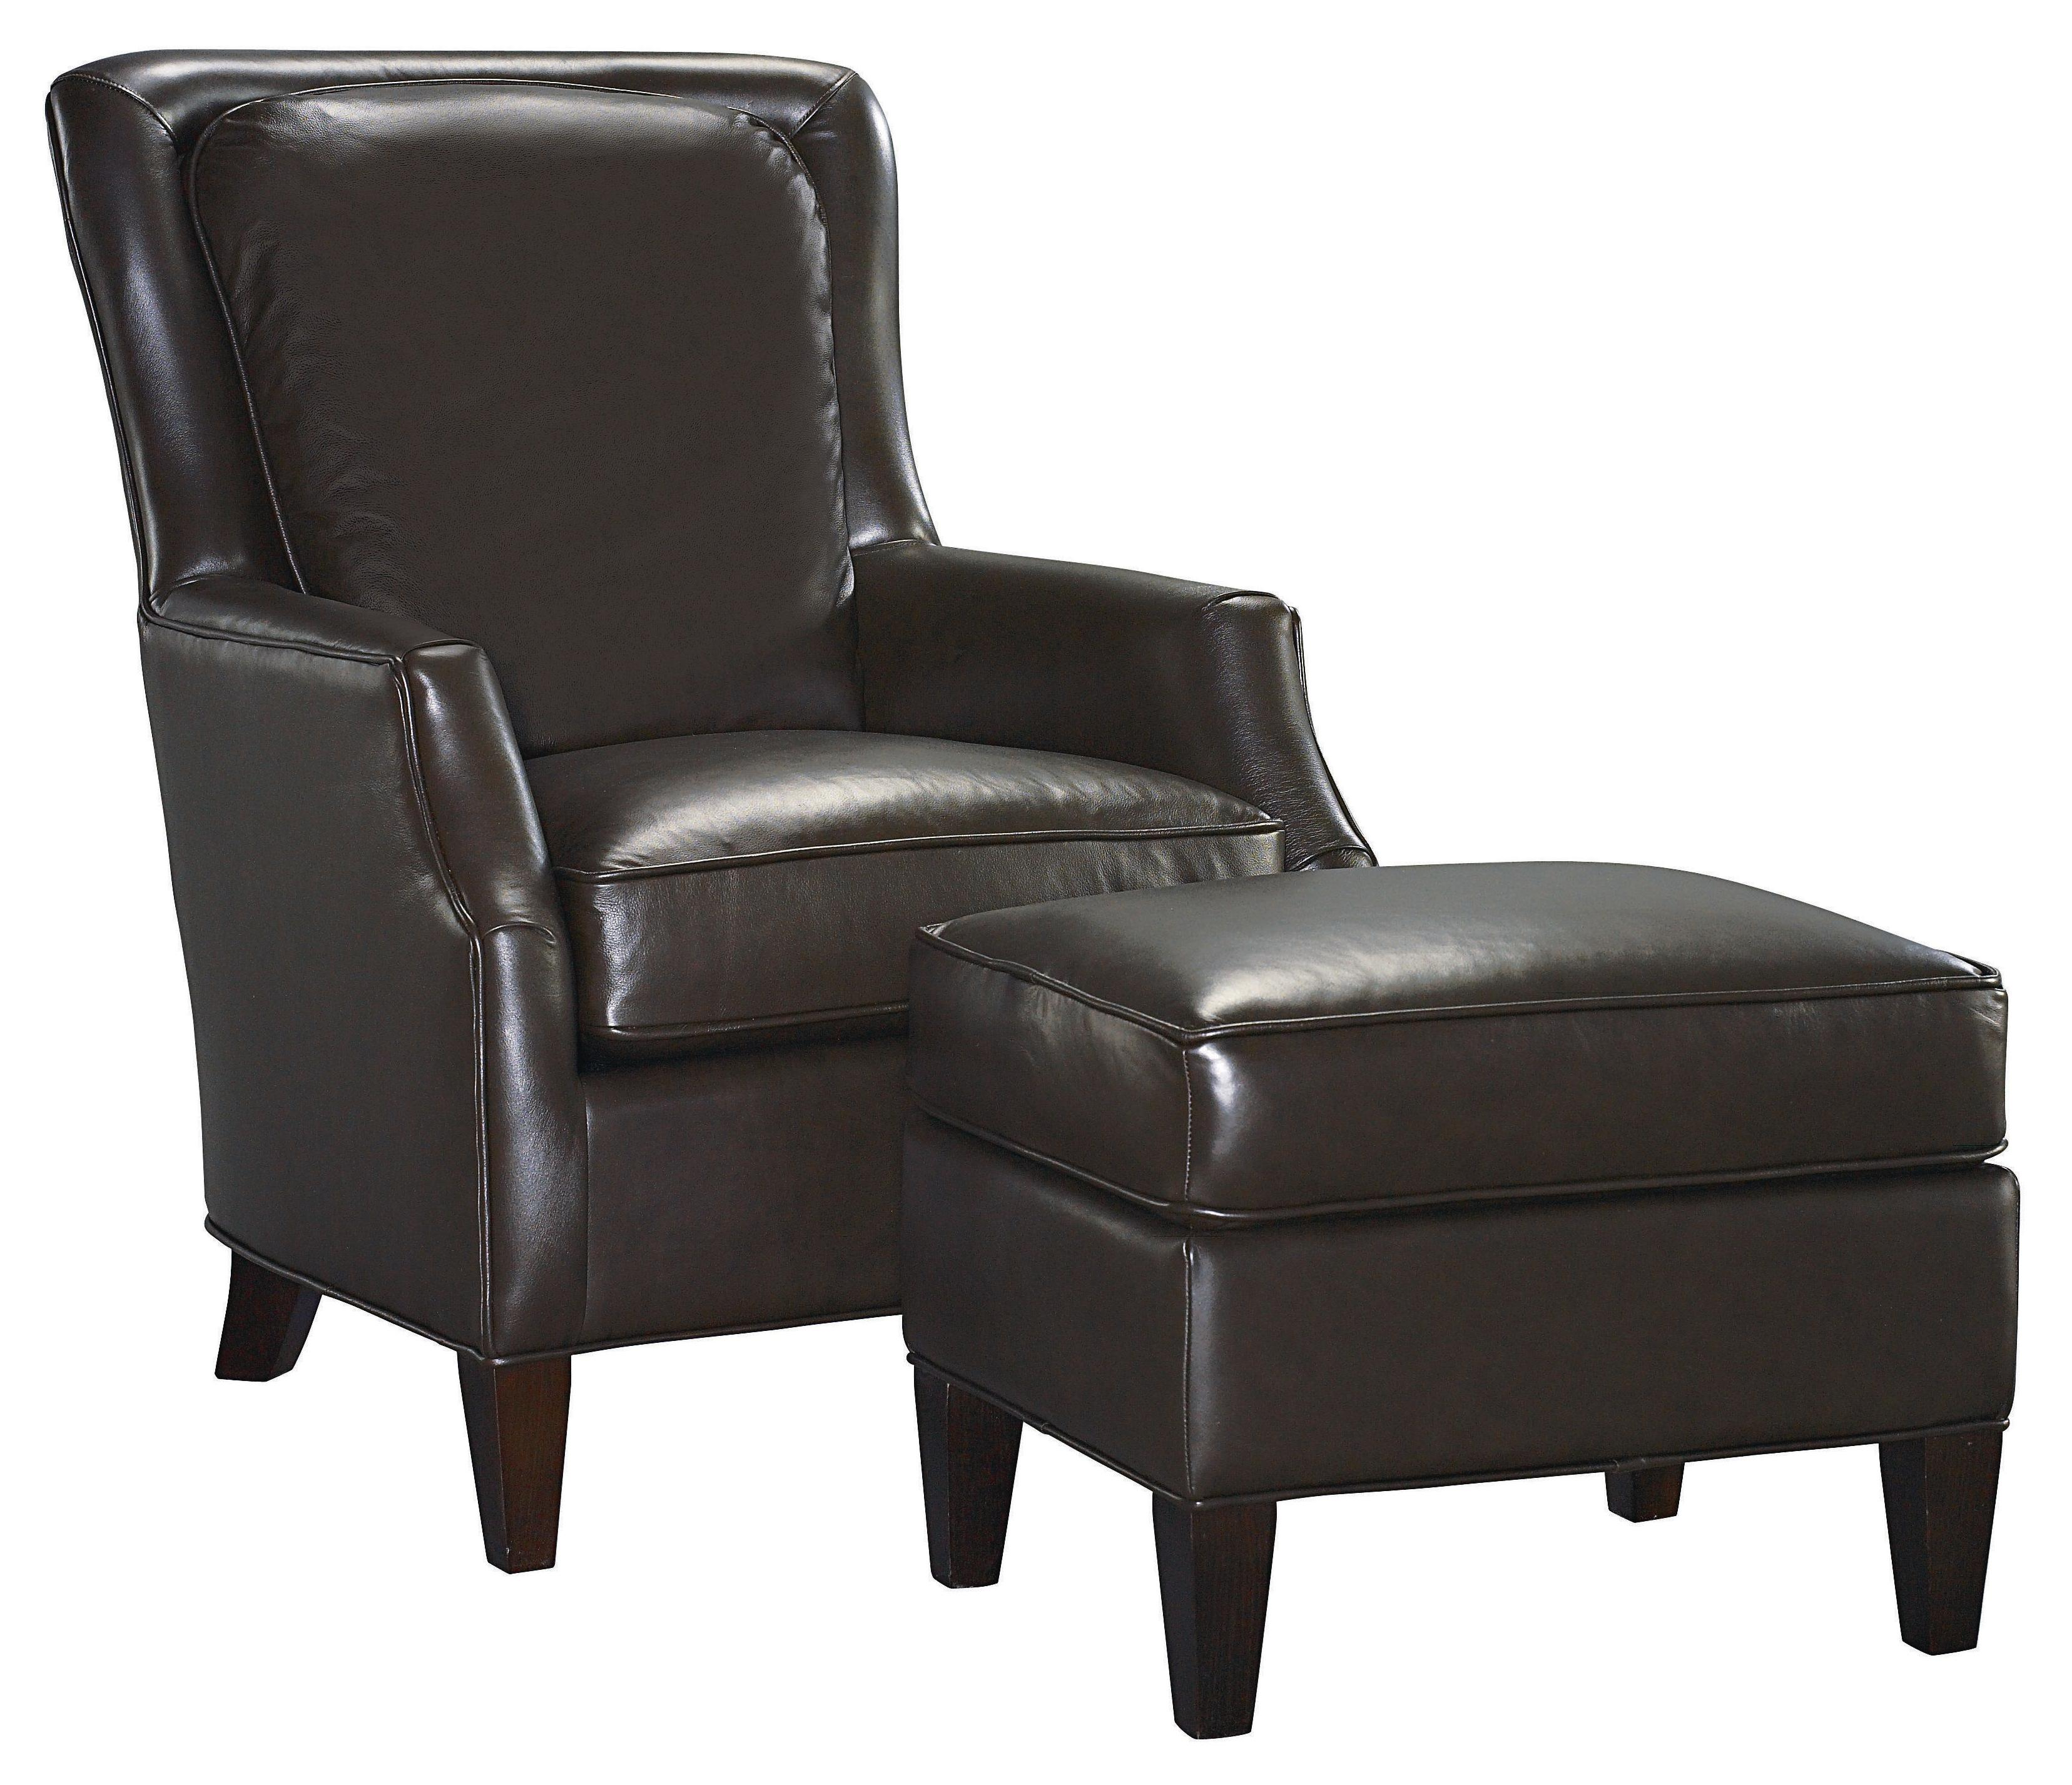 Kent  Chair and Ottoman by Bassett at Bassett of Cool Springs